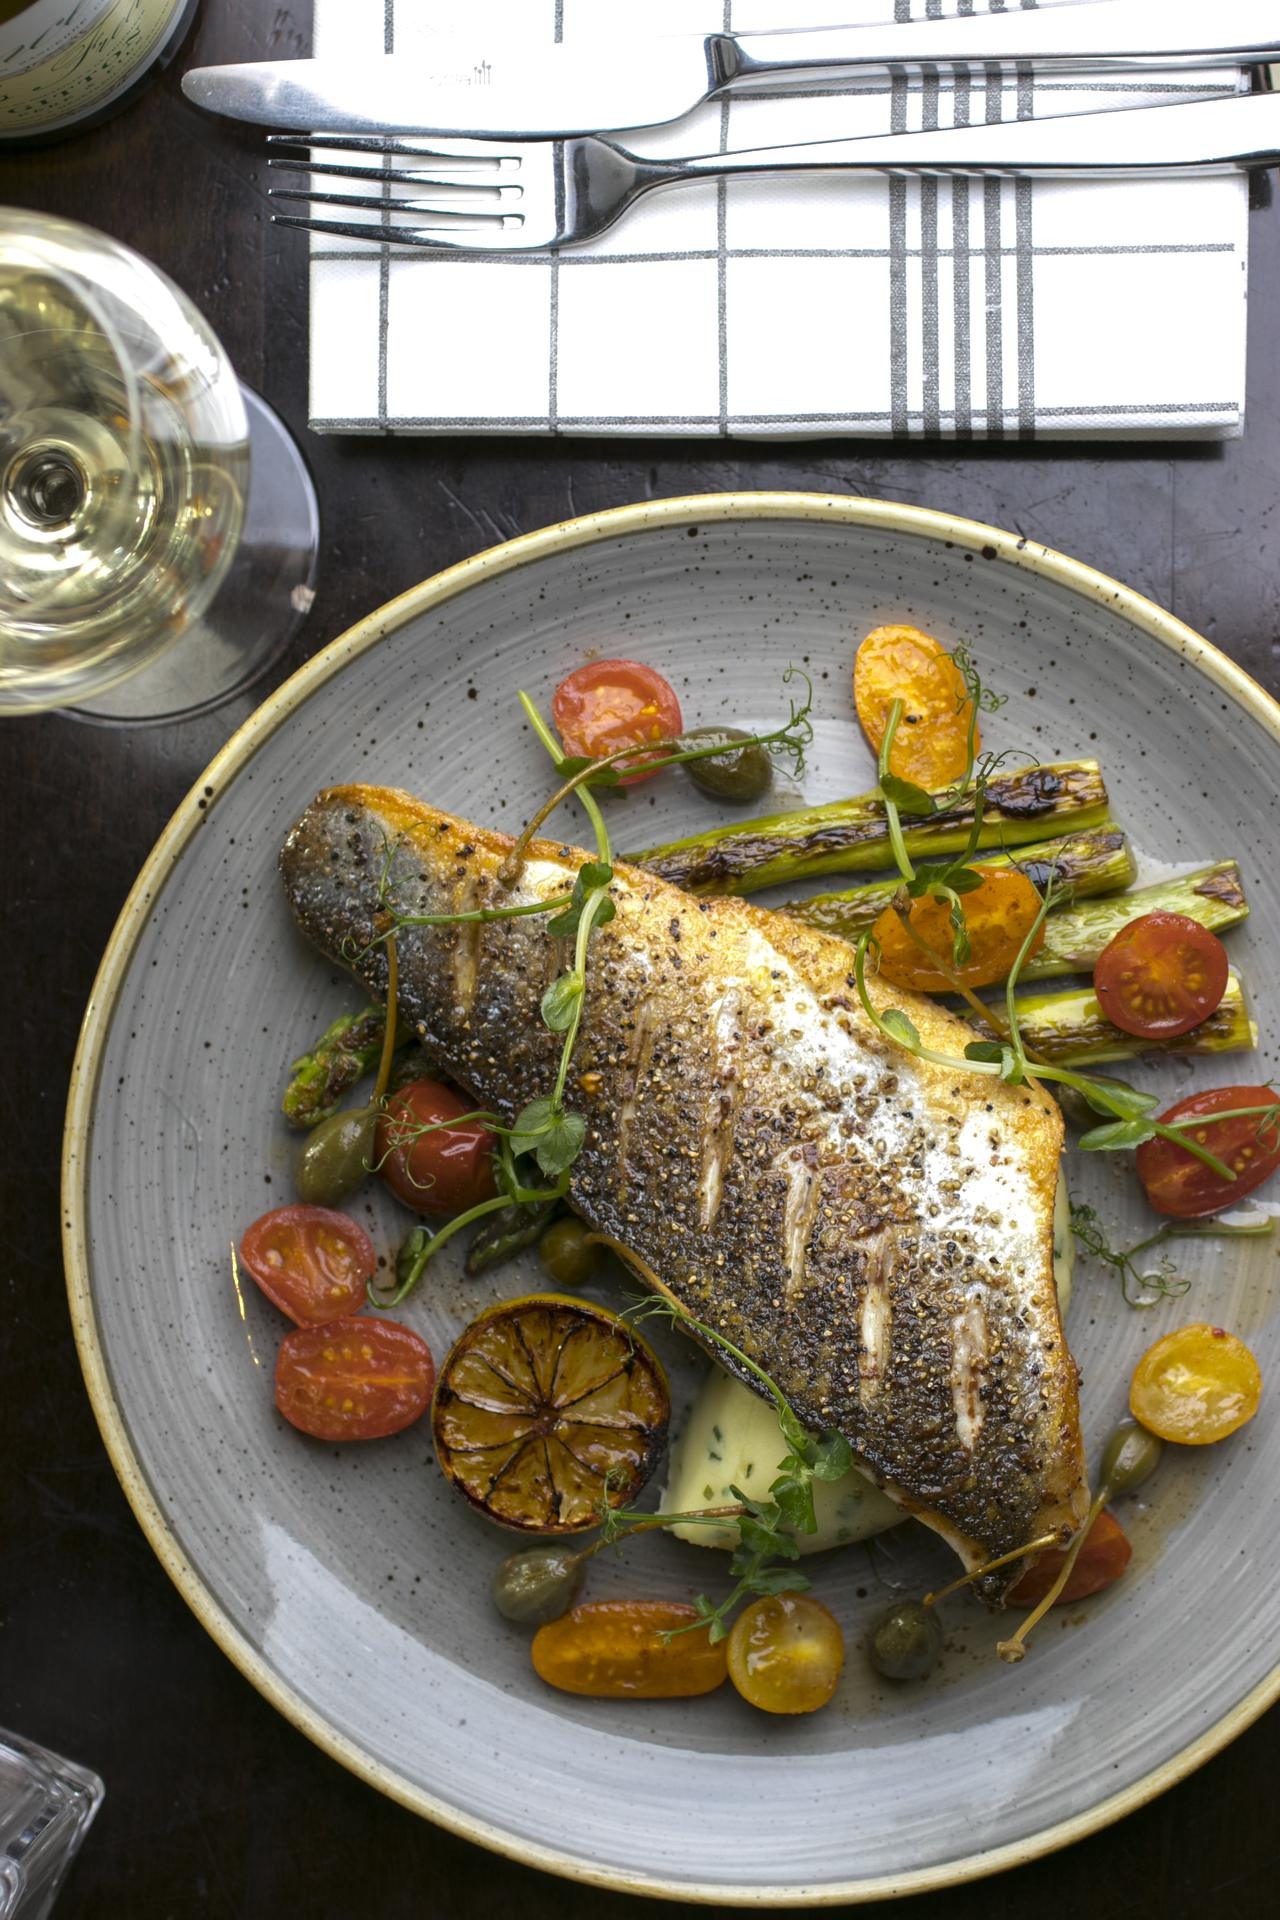 Pan-fried Fillet of Hake, grilled asparagus, heirloom cherry tomato and capers dressing